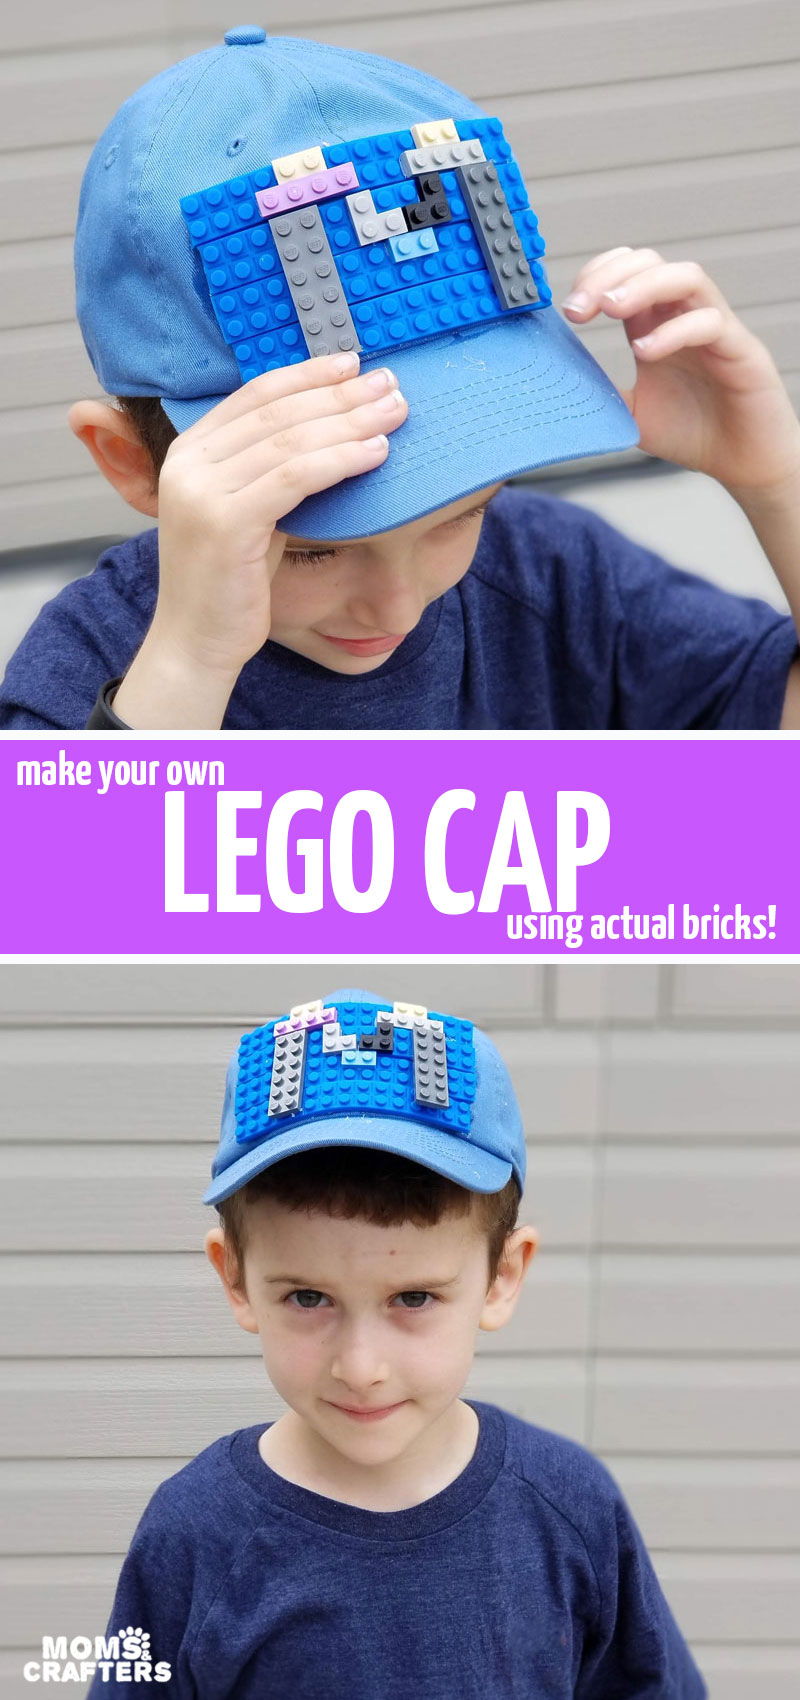 Click to learn how to make the coolest LEGO cap ever! This fun DIY embellished baseball cap is a wonderful summer craft for teens and tweens - boys or girls! It has actual LEGO bricks on it, making it the coolest DIY accessory ever! #lego #diyfashion #crafts #teencraft